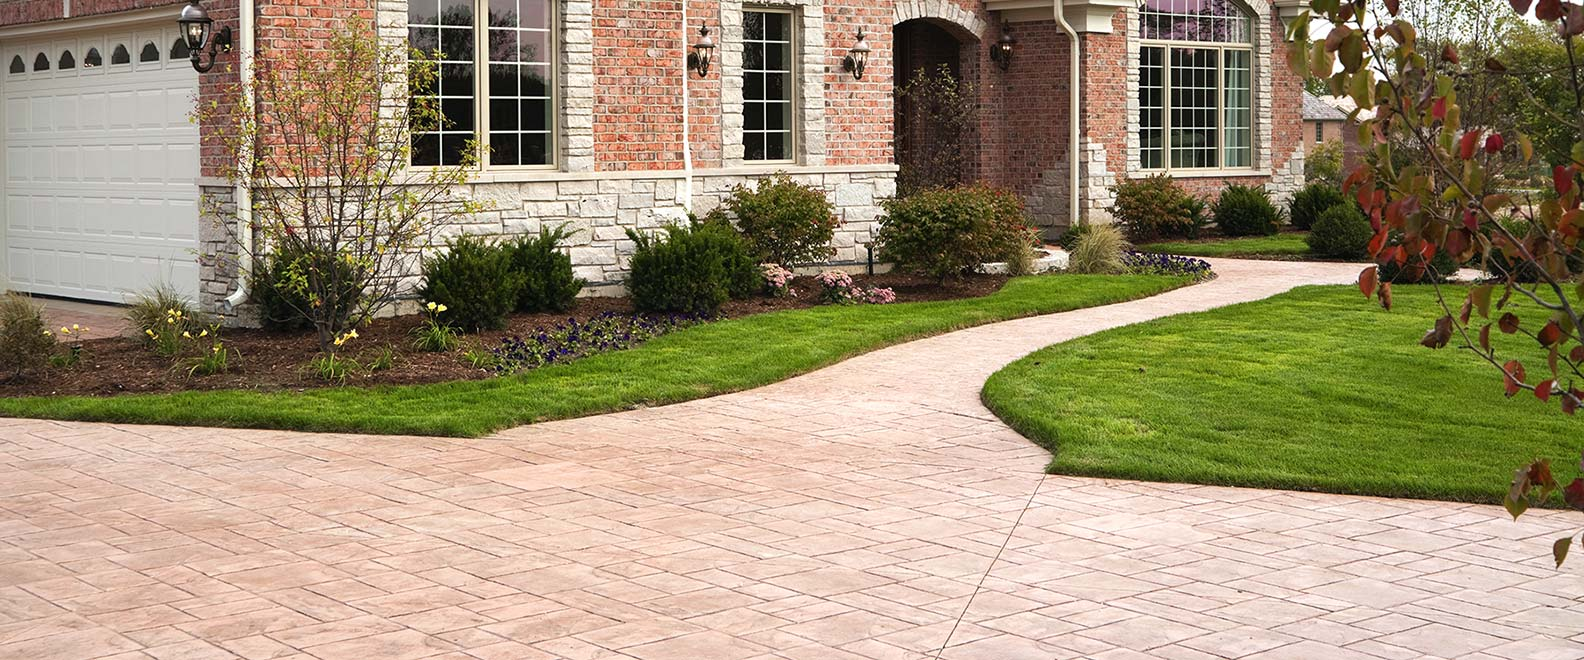 Pressure Cleaning Driveway and Walkway